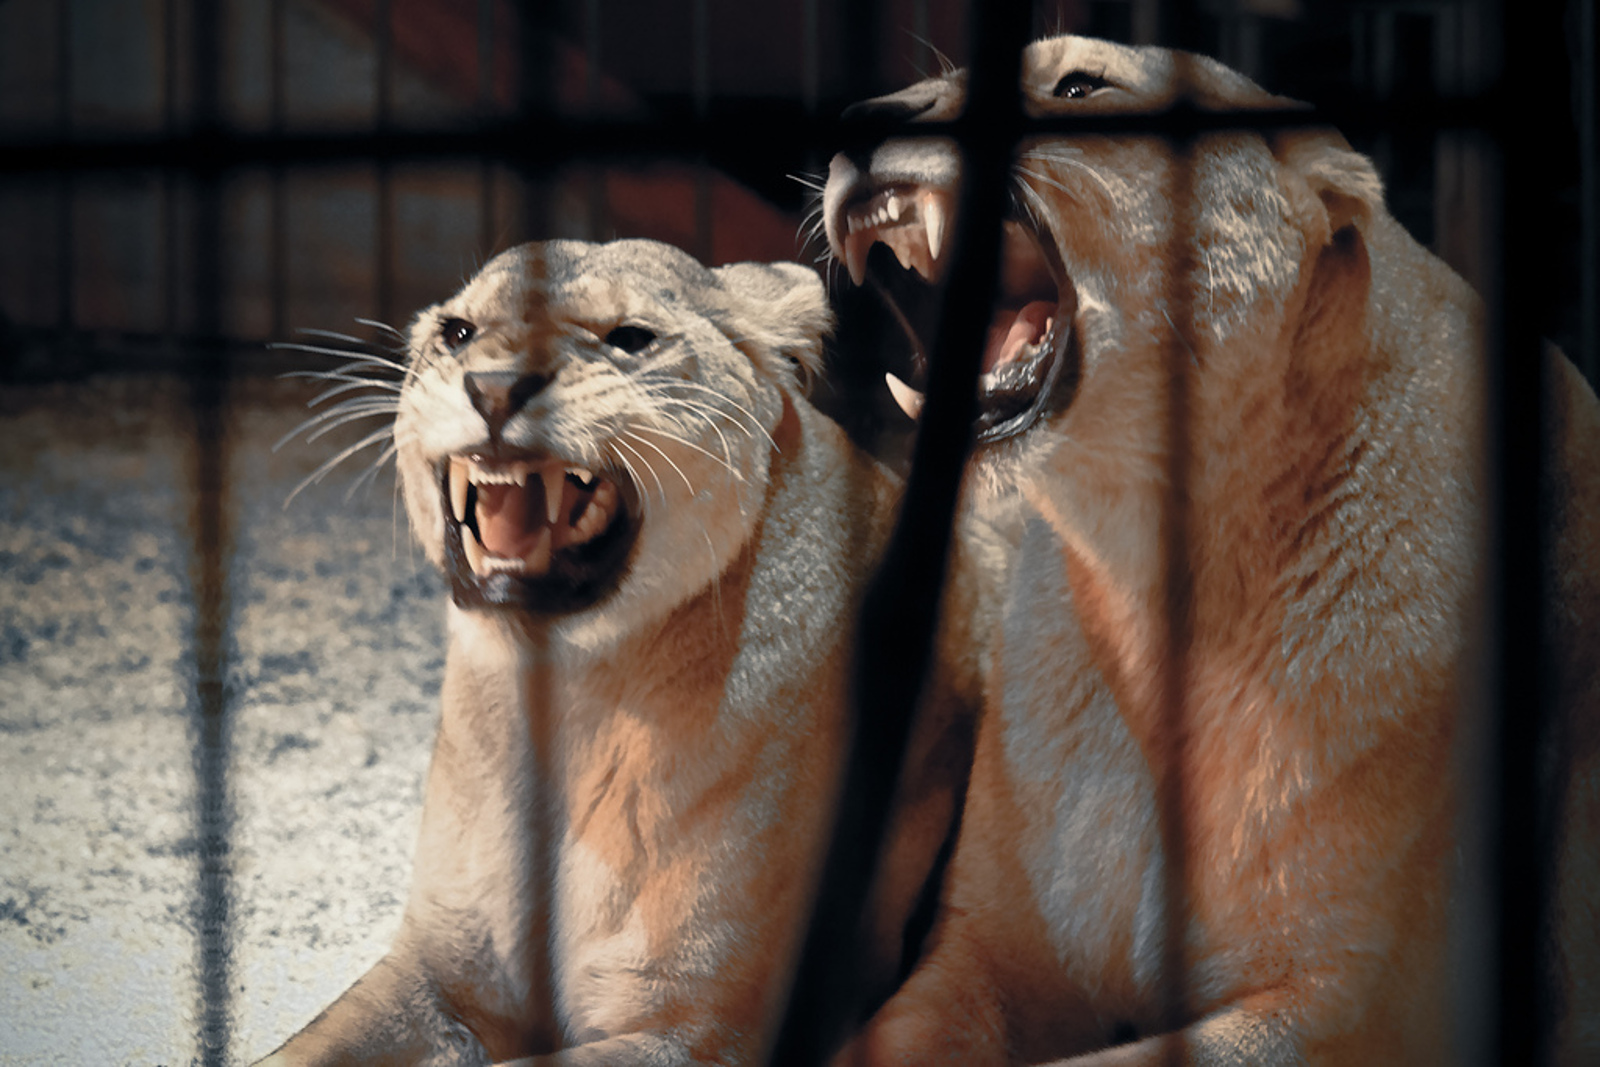 Wild Animal Circuses Might Soon be a Thing of the Past in Scotland ... Will the Rest of the UK Follow